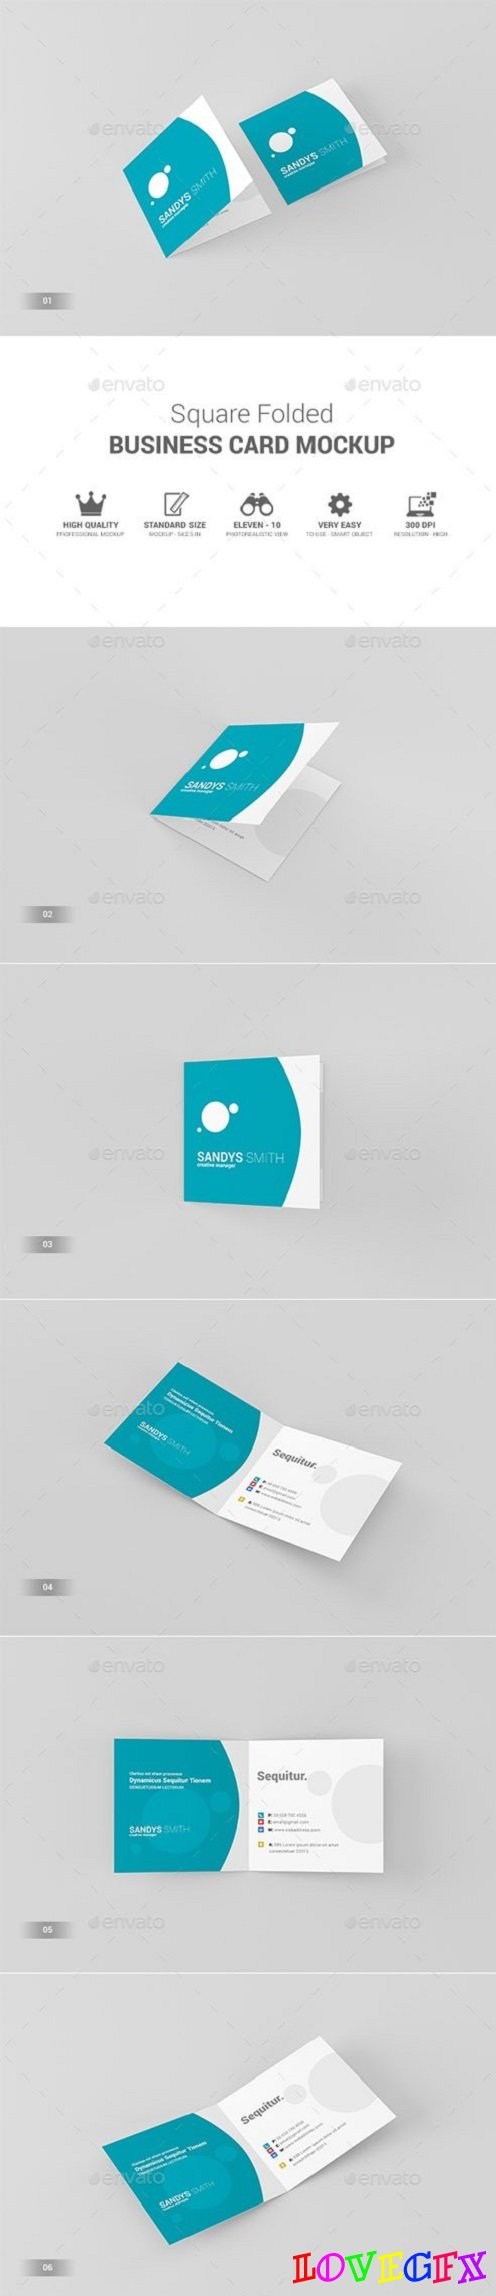 Square Folded Business Card Mock-Ups 19319589